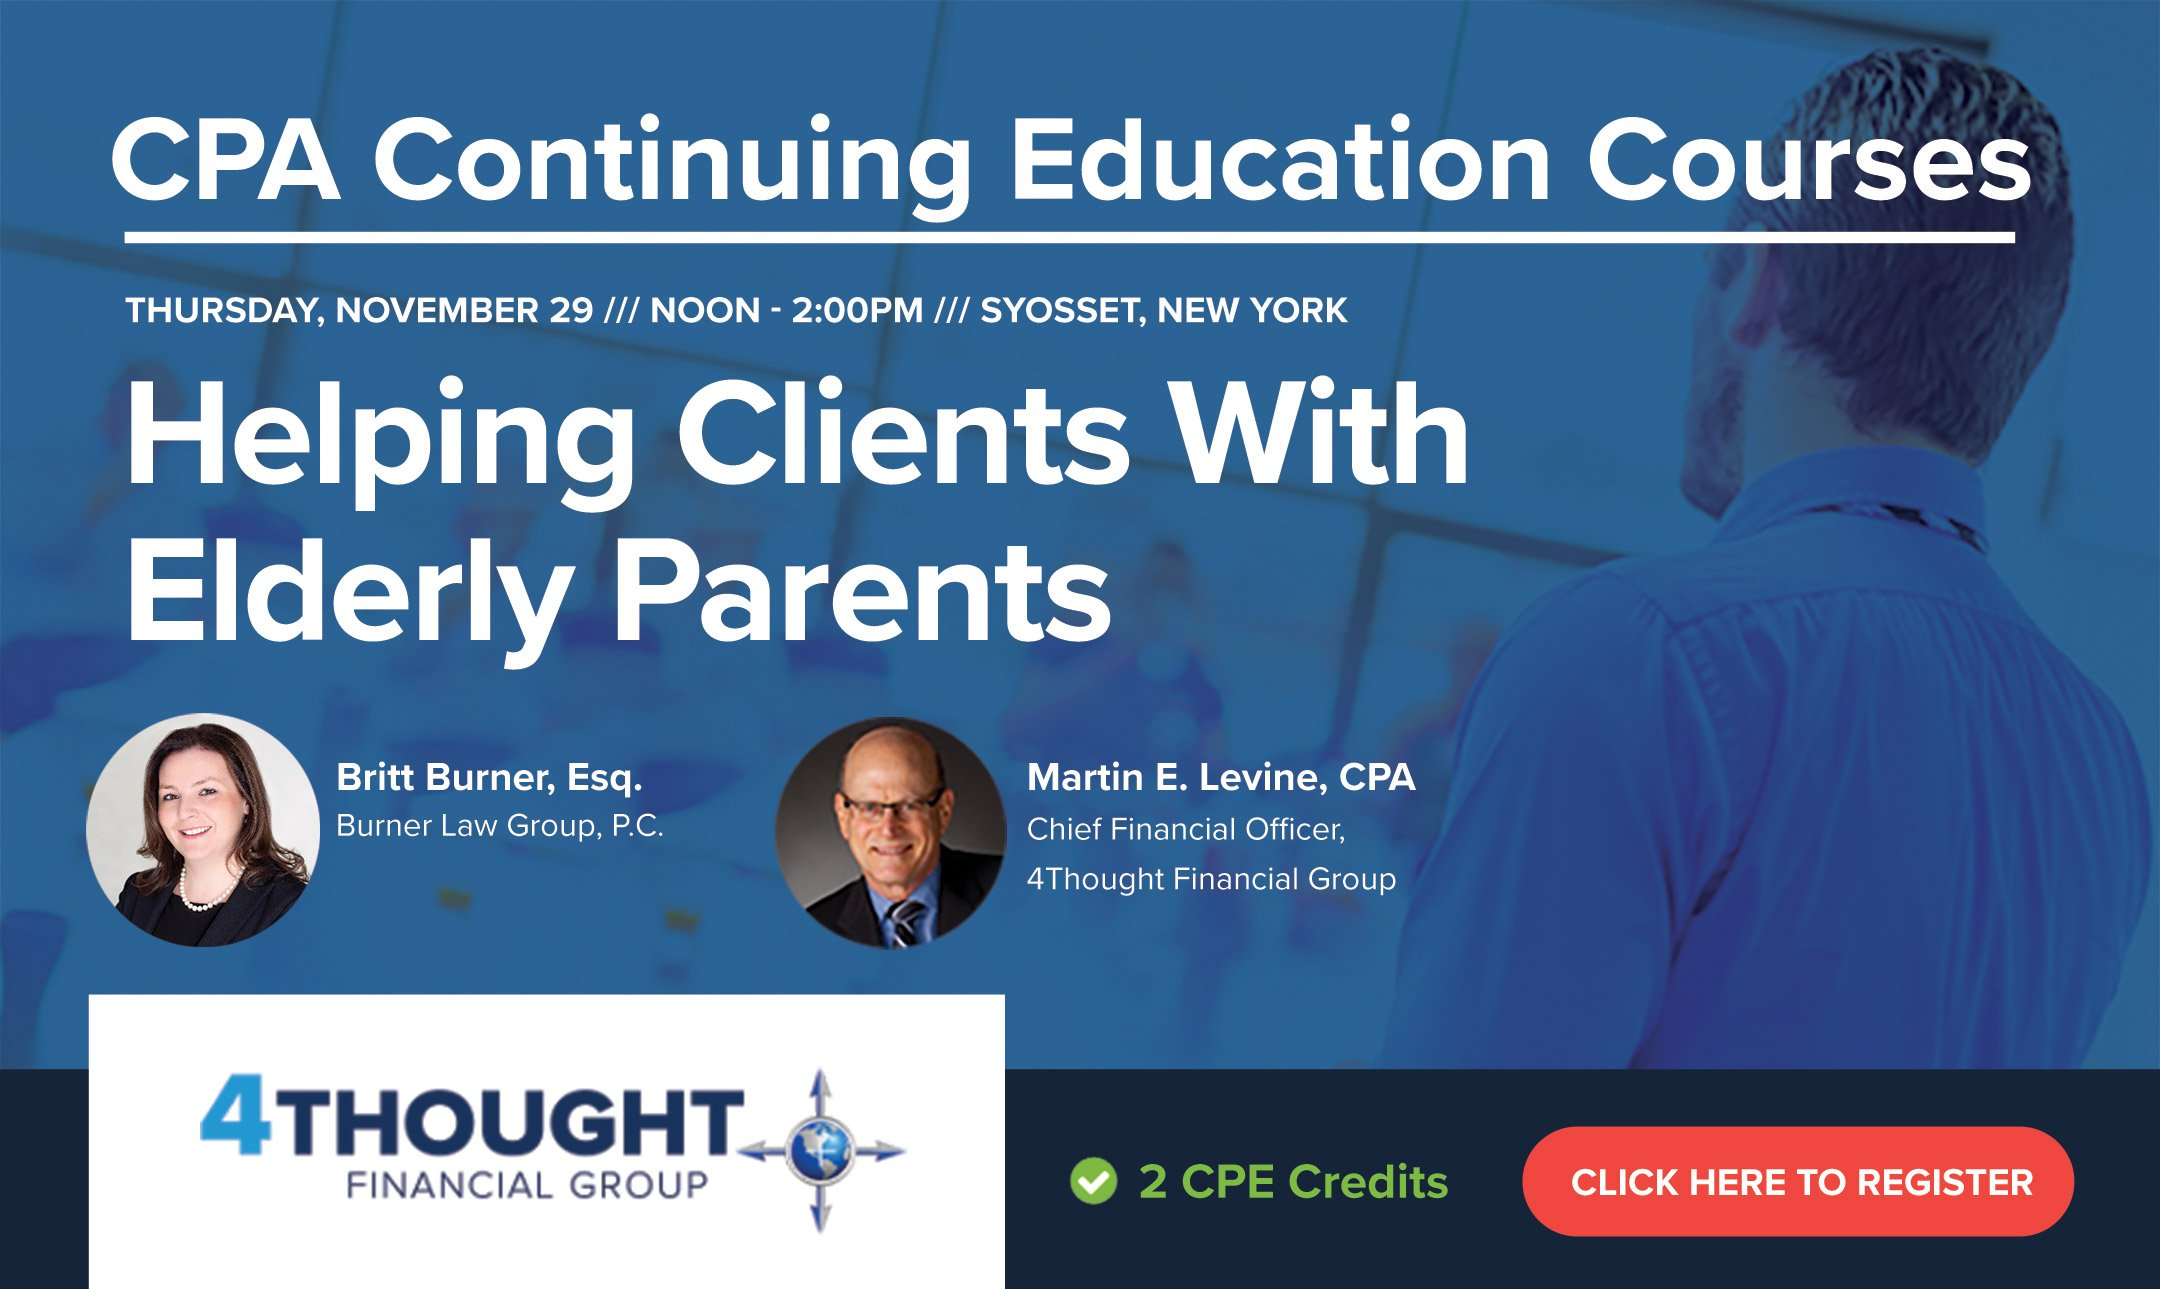 CPA Continuing Education Course: Helping Clients With Elderly Parents